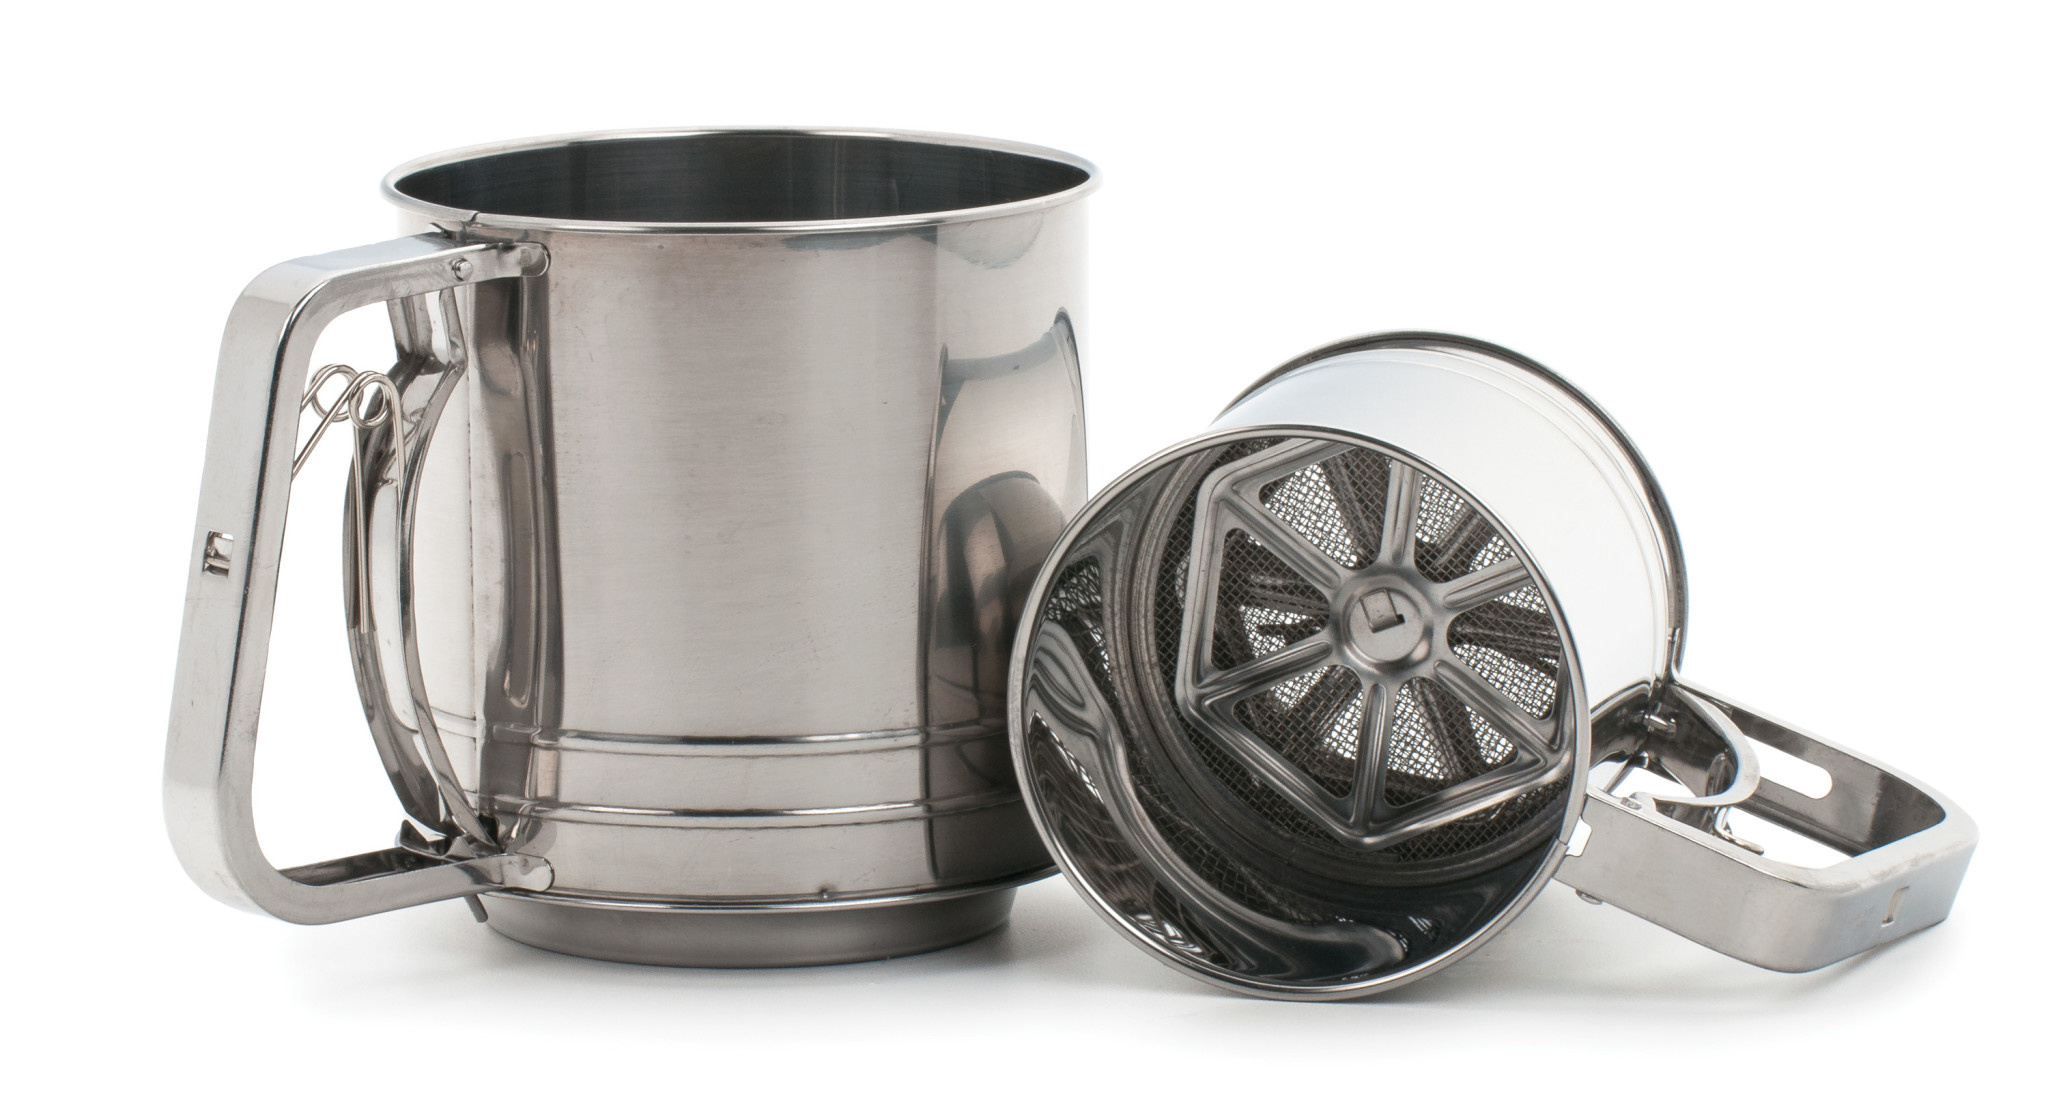 RSVP 5 Cup Flour Sifter